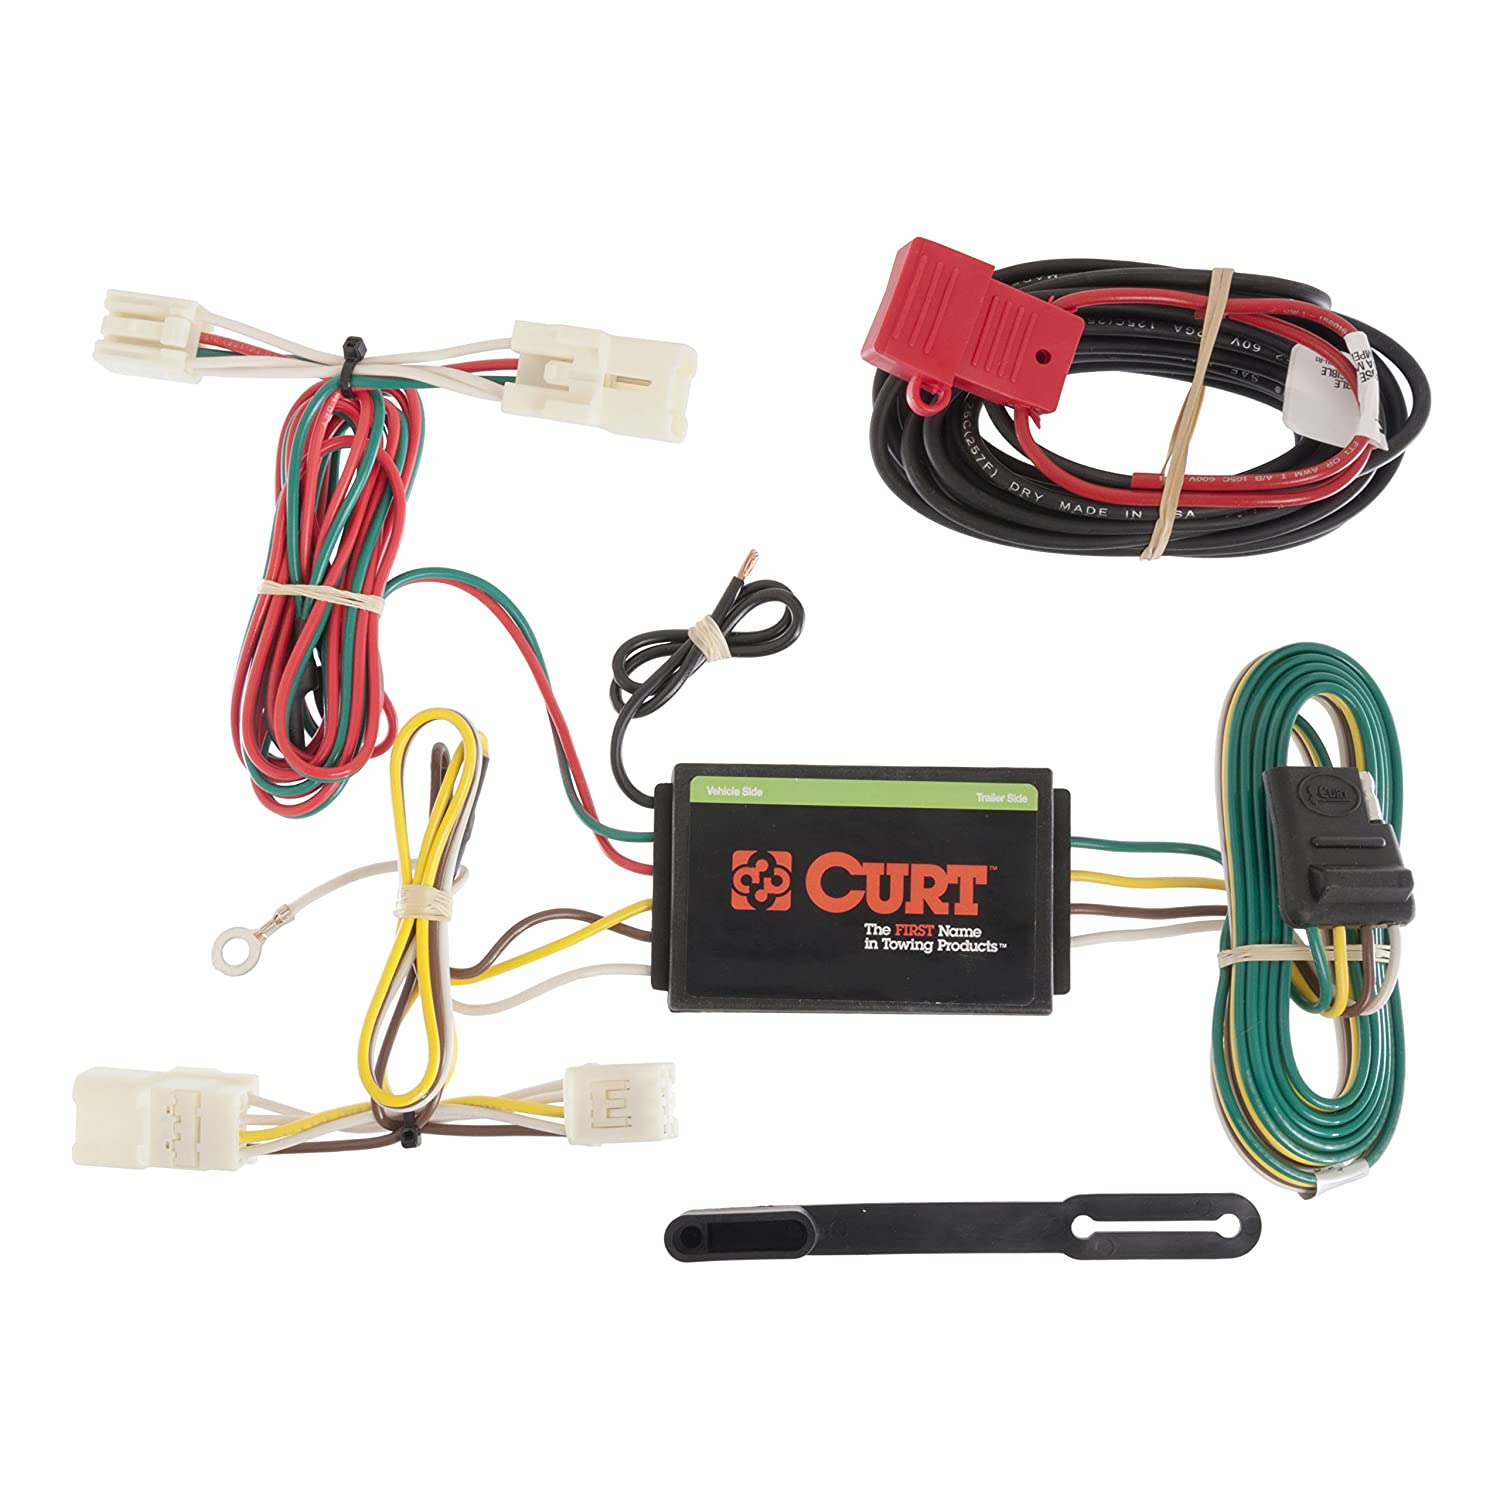 817l7jcQOtL._SL1500_ amazon com curt 56165 custom wiring harness automotive tow hitch wiring harness at gsmportal.co